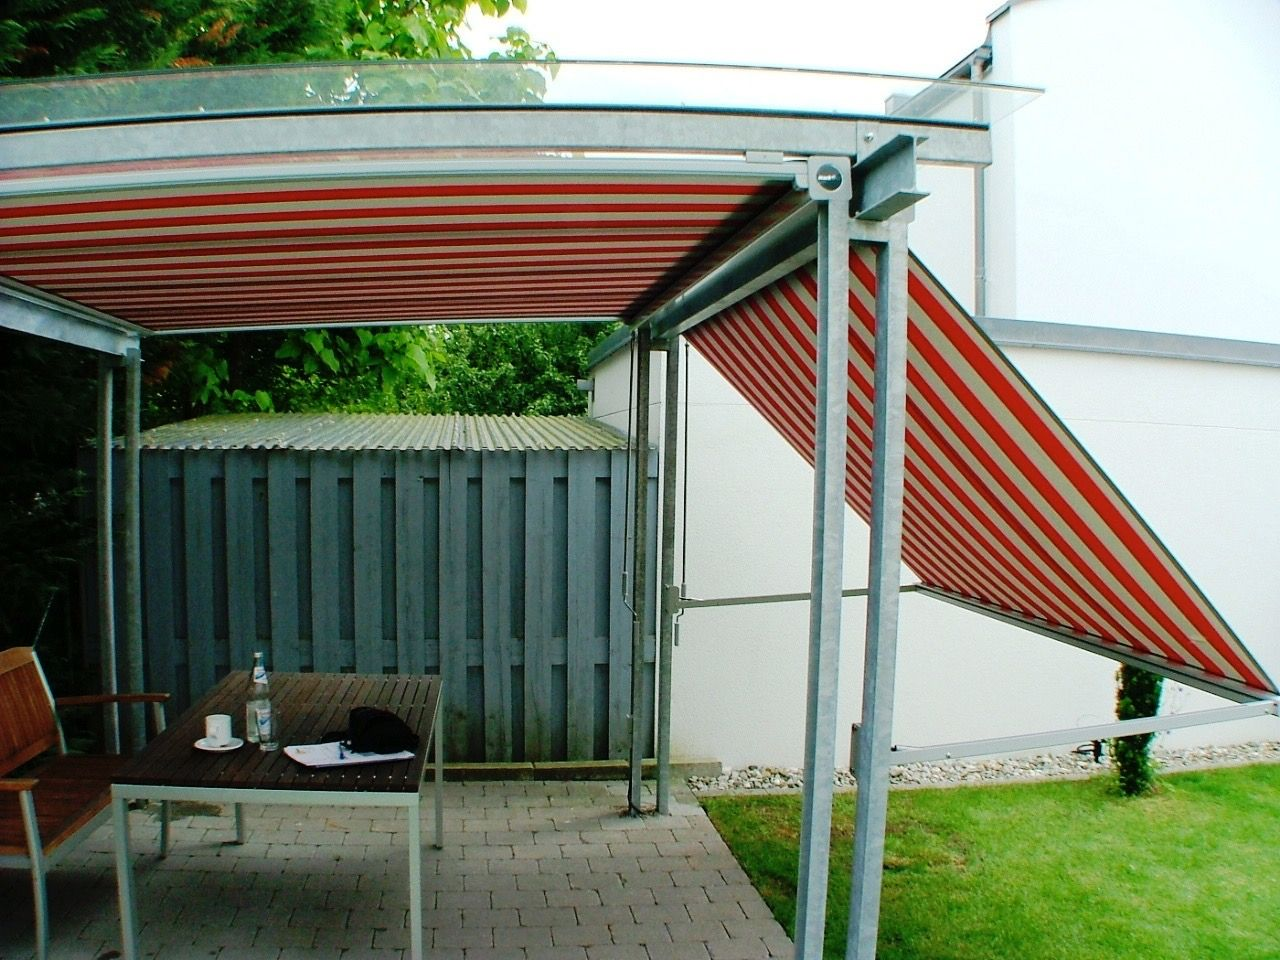 Markise 3x3m Excellent Architektur Pavillon Markise Mit